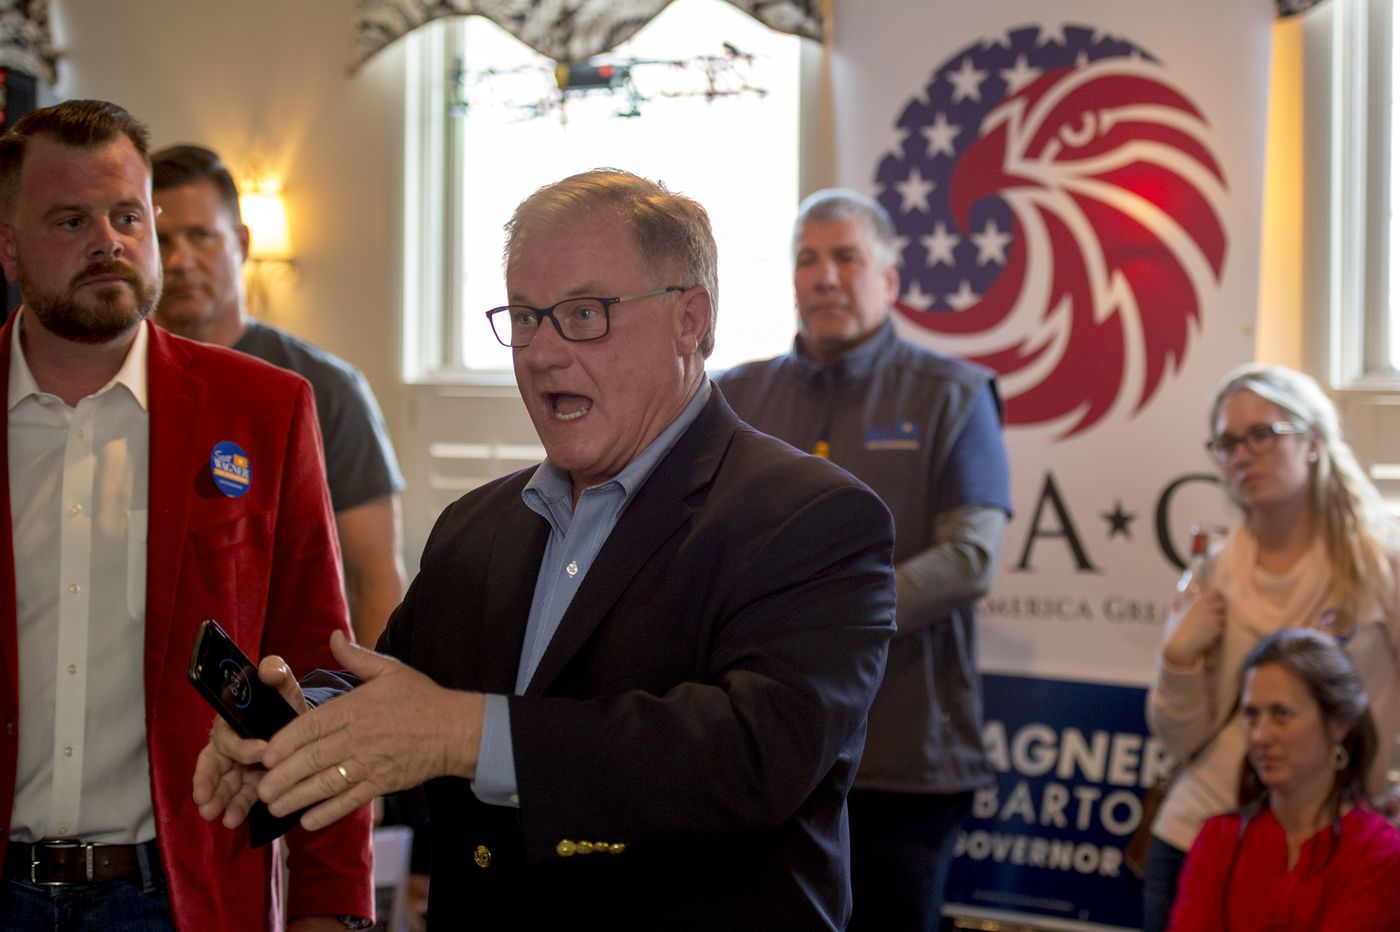 Scott Wagner cast himself as Trump-like in his run for Pa. governor. Some Philly-area GOP donors aren't feeling it.